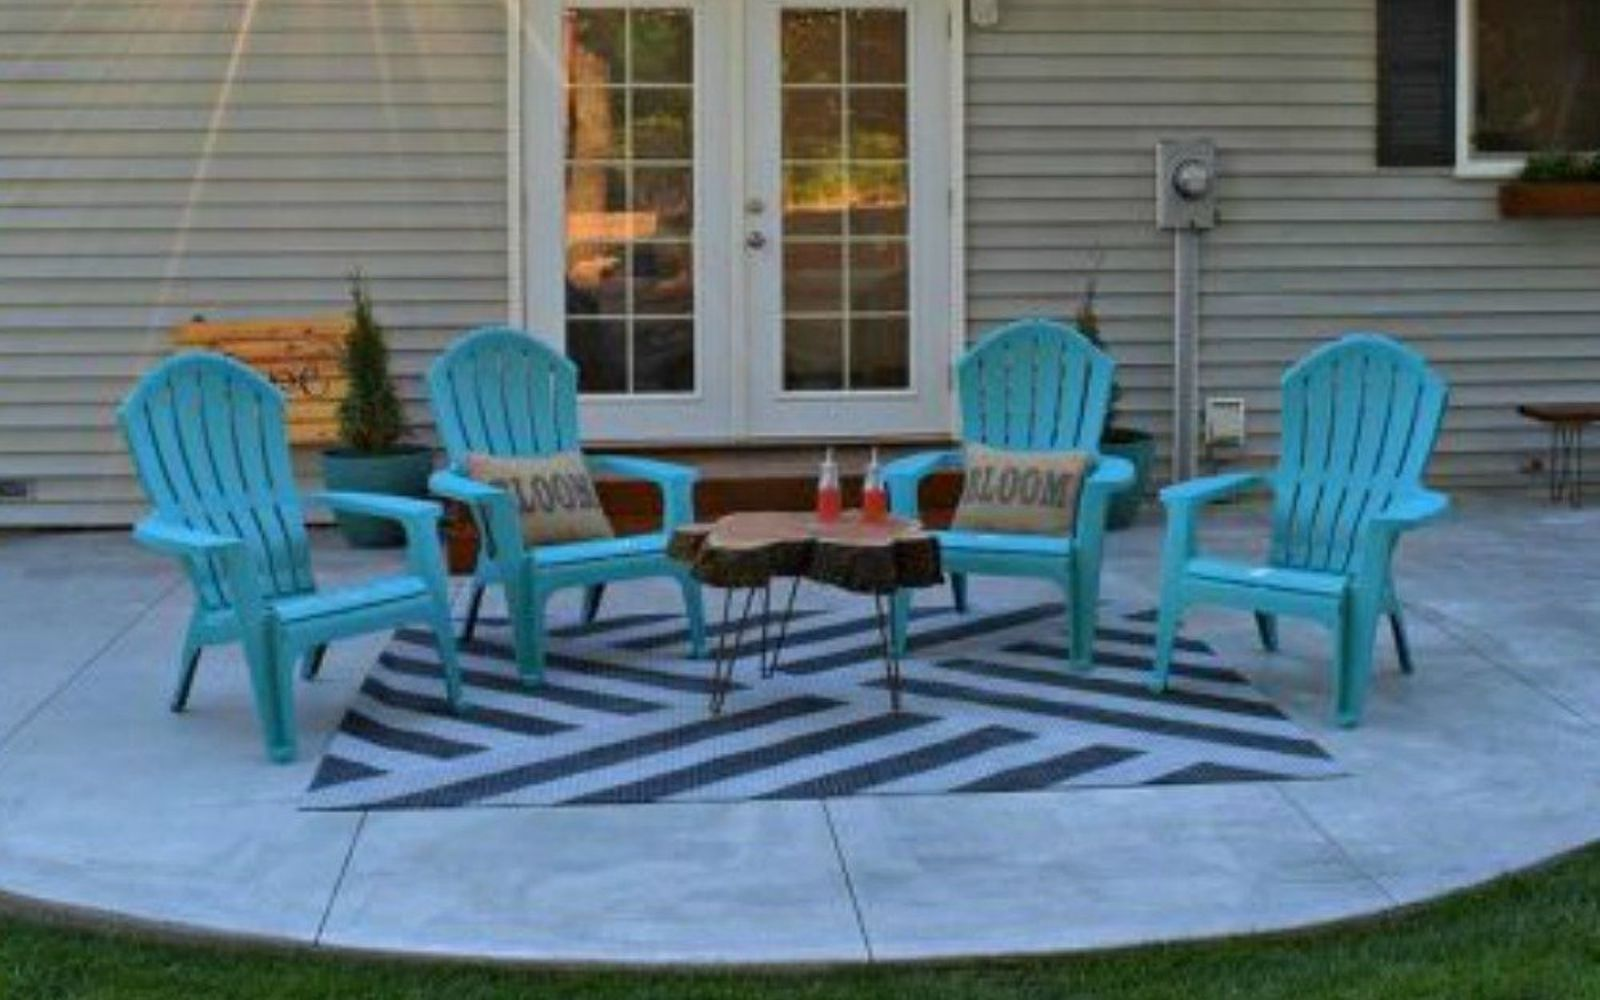 s transform dollar store rugs with these 11 stunning ideas, reupholster, Brighten up a cheap rug for your patio